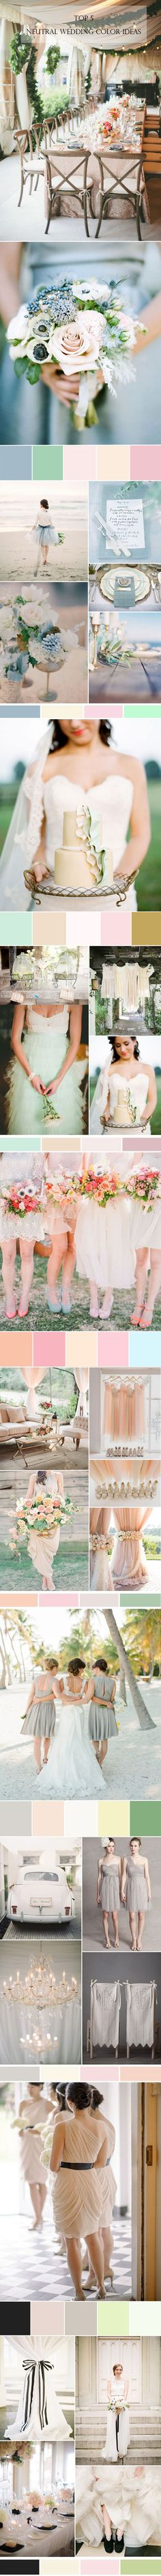 5 hot neutral wedding color ideas for wedding 2015